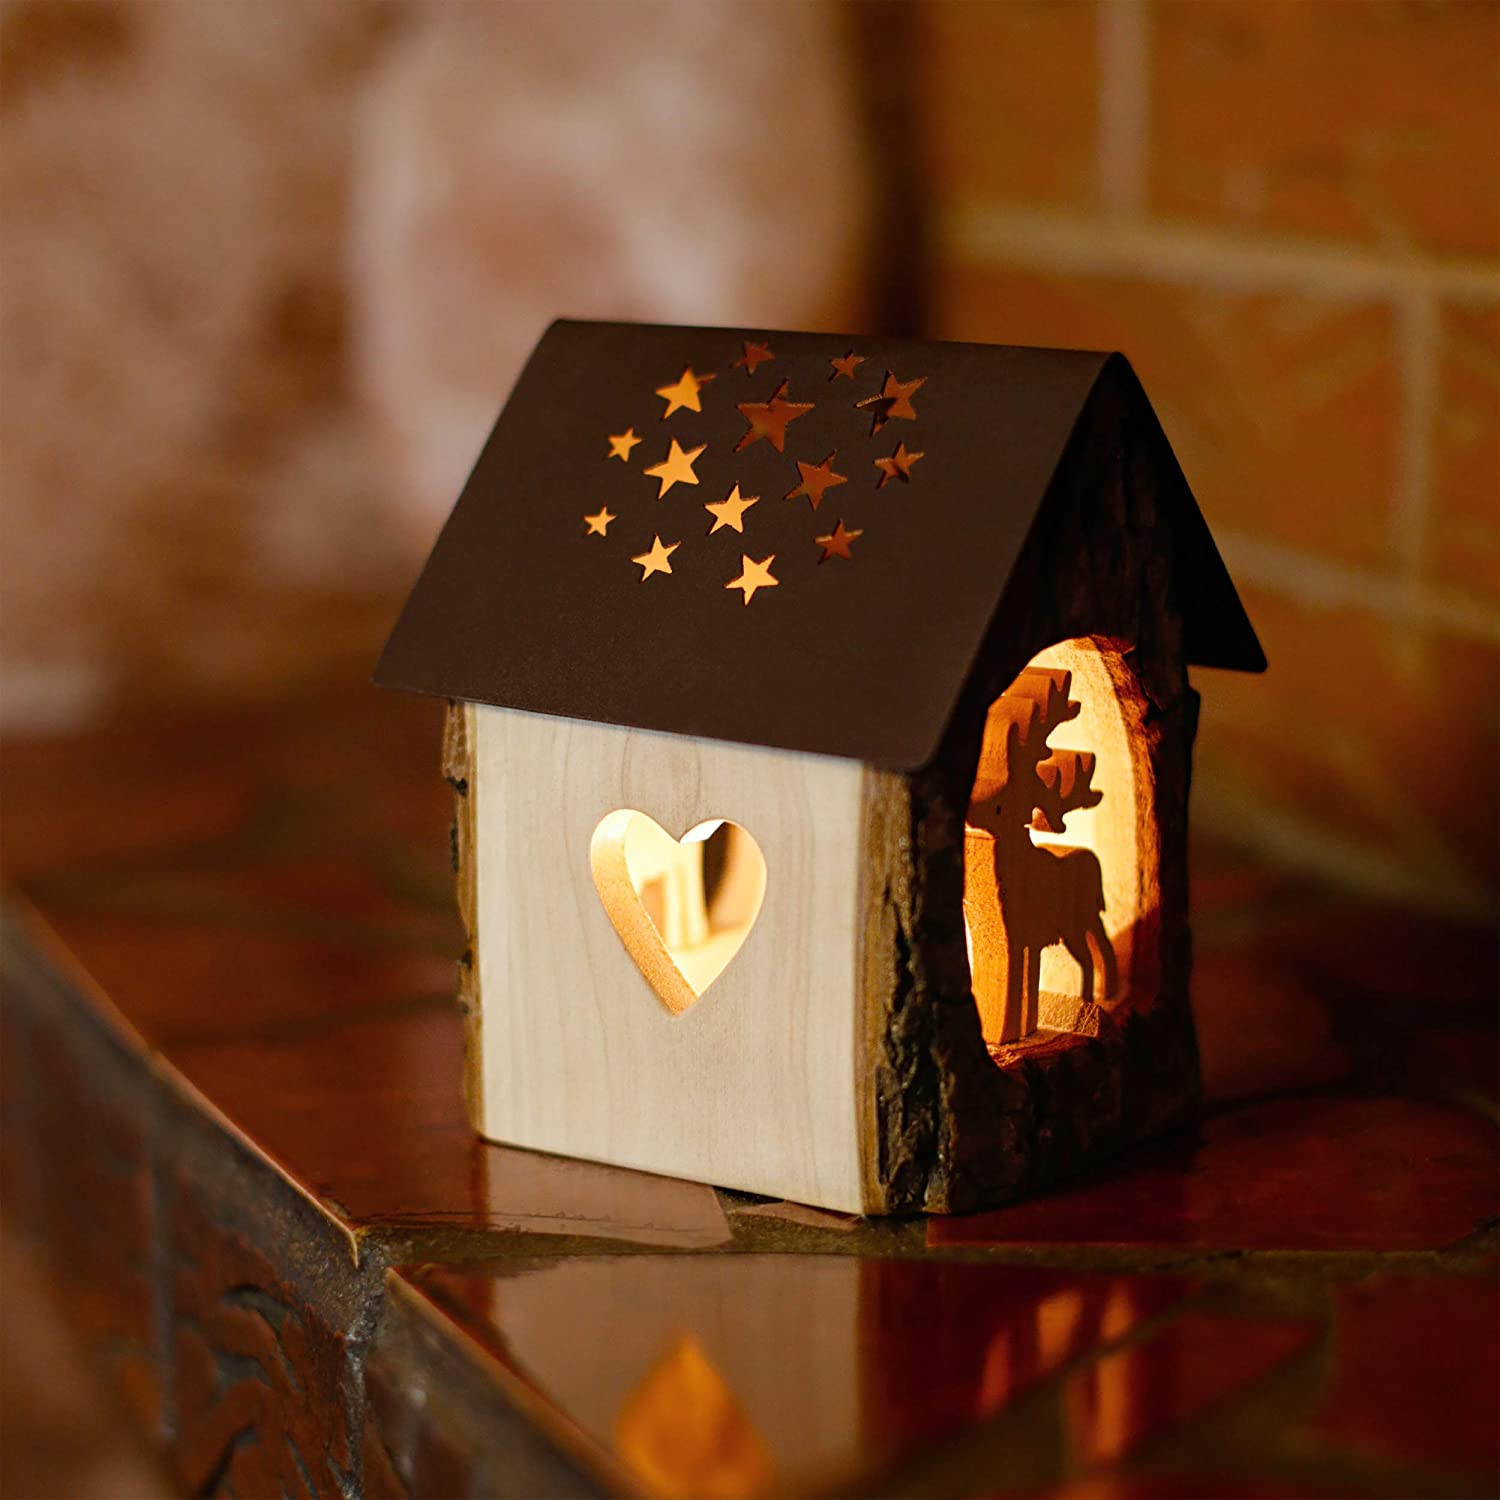 Rustic Decor Christmas Candle Holder Forest Decor Nativity Scene Tealight Candle Holder Holiday Decoration Handmade in Germany